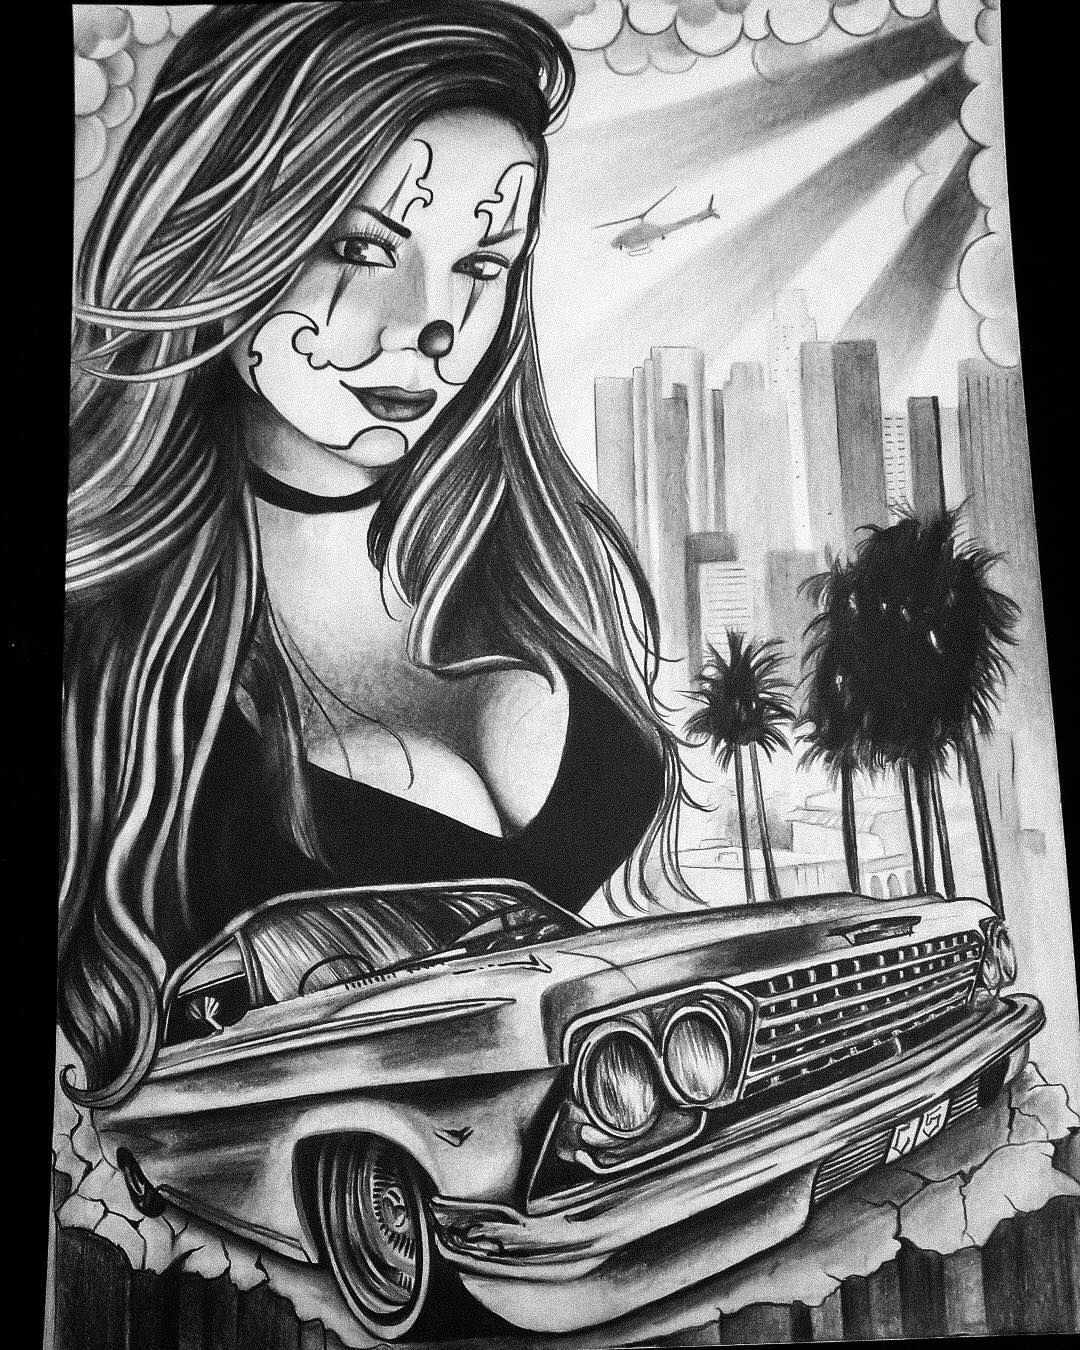 Projet bueno chicano drawings chicano tattoos chicano art tattoos - Brown pride lowrider ...